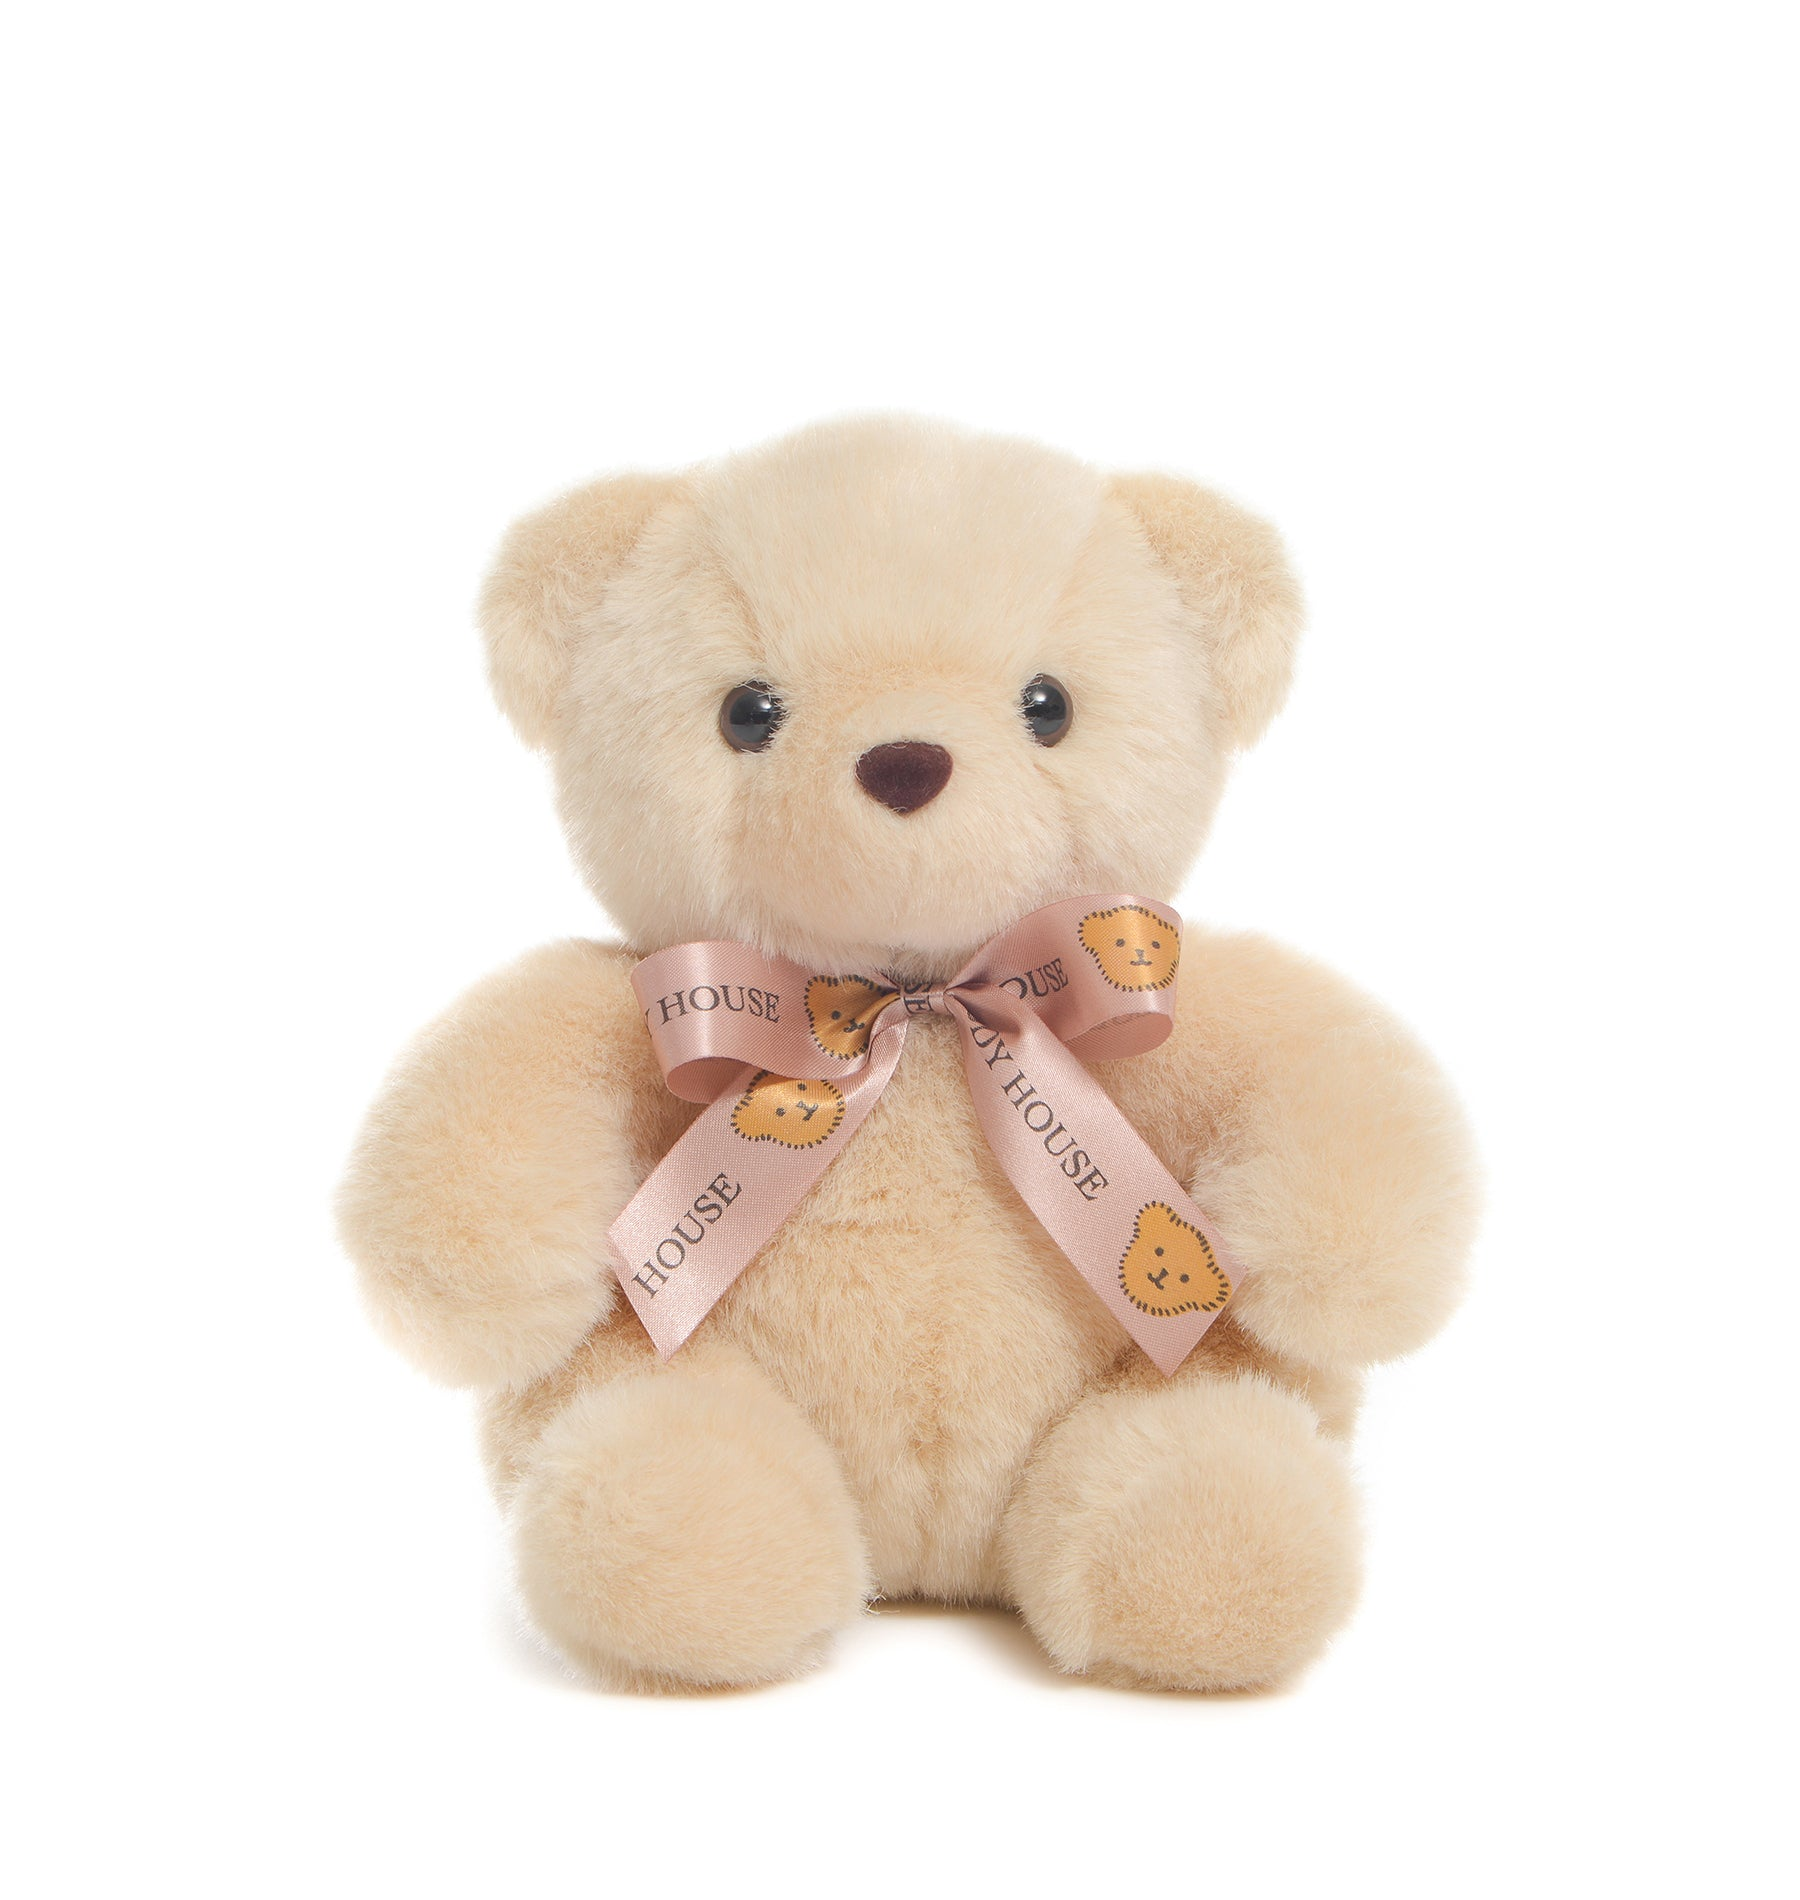 TEDDY HOUSE BONEKA TEDDY BEAR PHILIP BEAR 7 INCHI